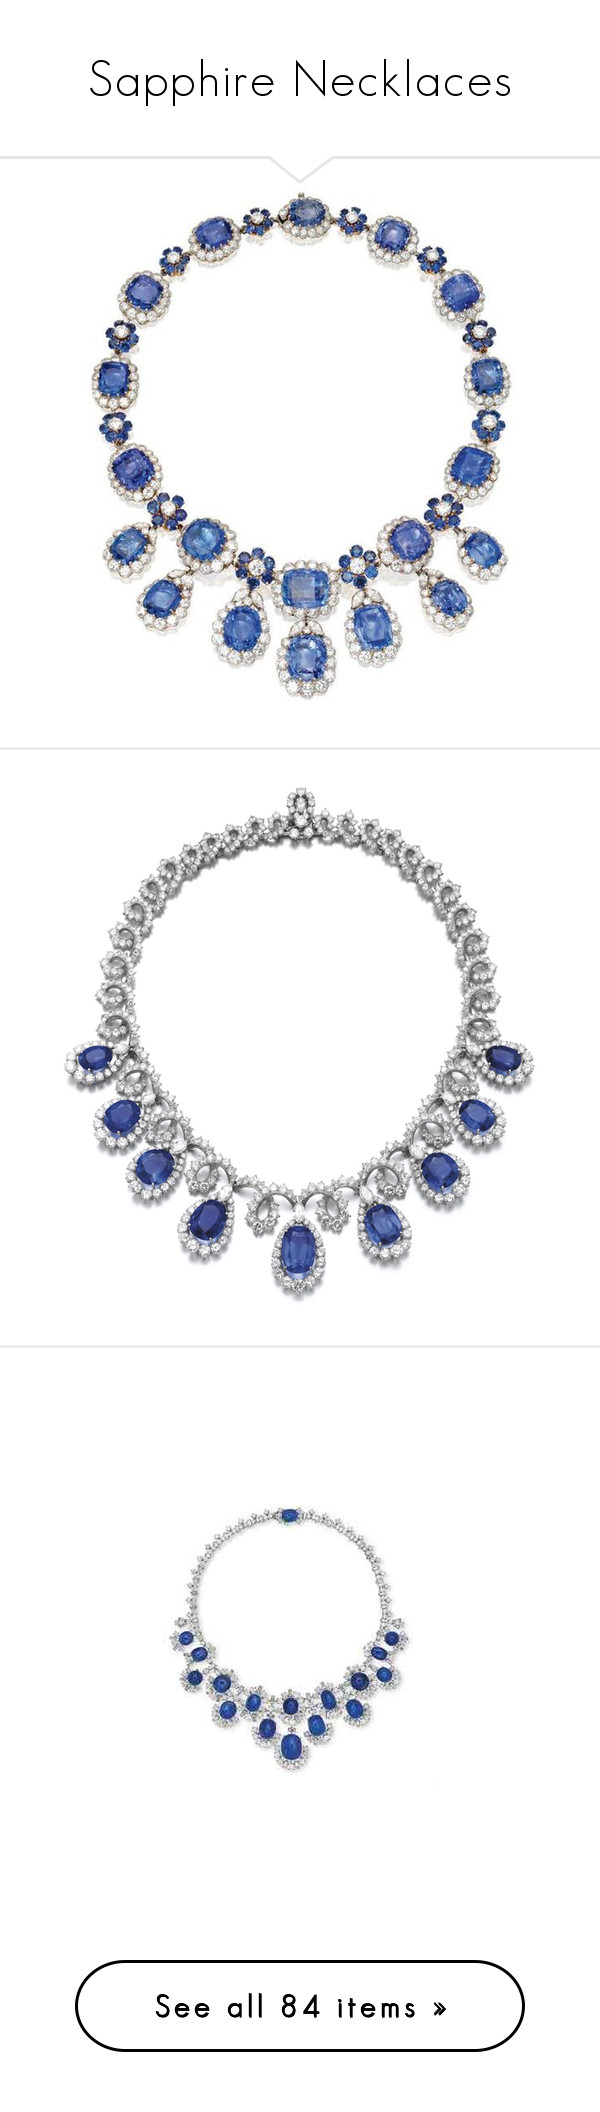 """""""Sapphire Necklaces"""" by sakuragirl ❤ liked on Polyvore featuring jewelry, necklaces, van cleef arpels necklace, van cleef arpels jewelry, wine necklace, wine jewelry, sapphire jewellery, diamond jewelry, bulgari and sapphire jewelry"""